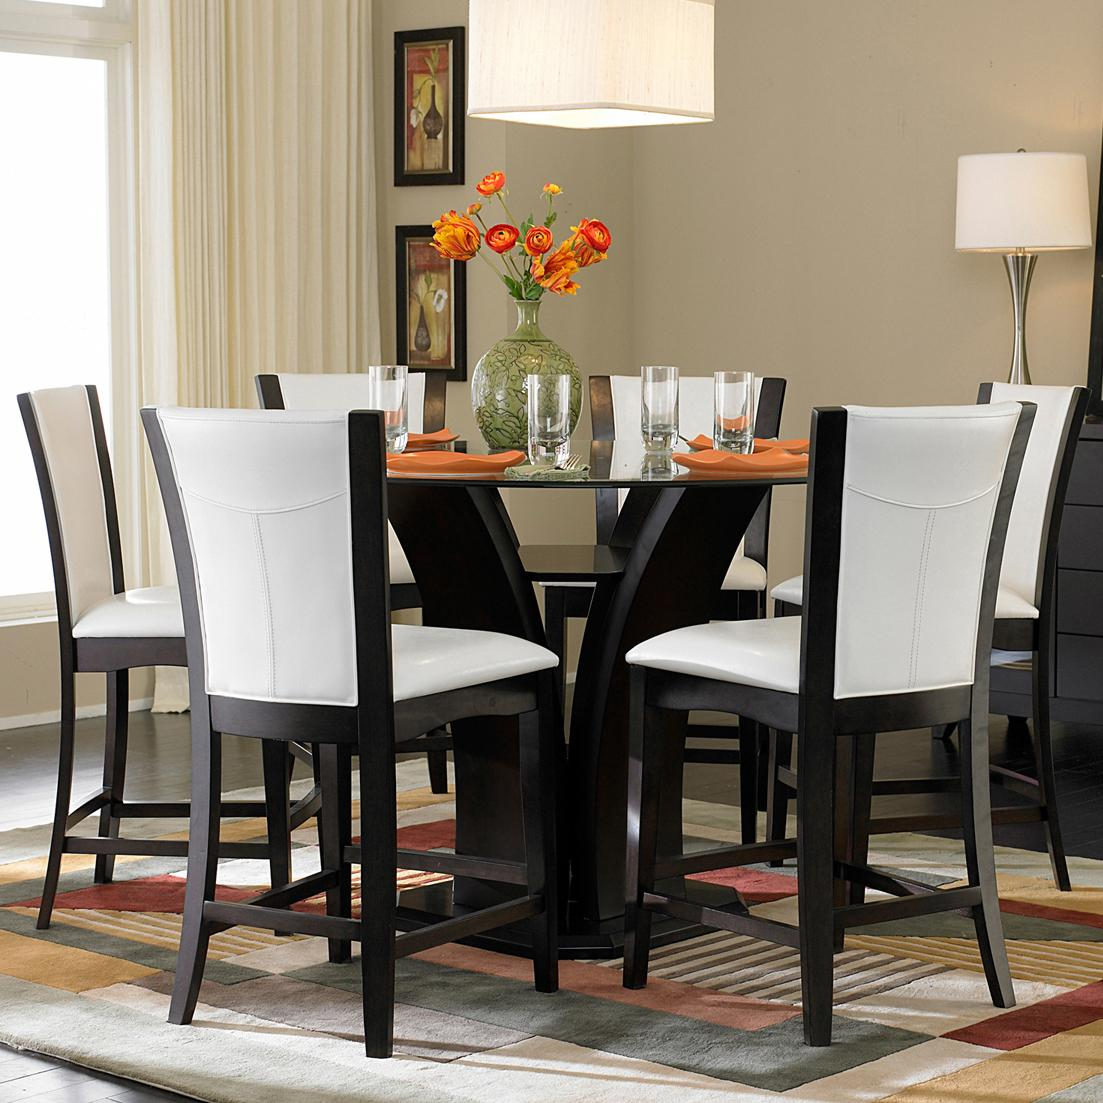 Homelegance 710 7 piece counter height glass top dining for Best dining room table height